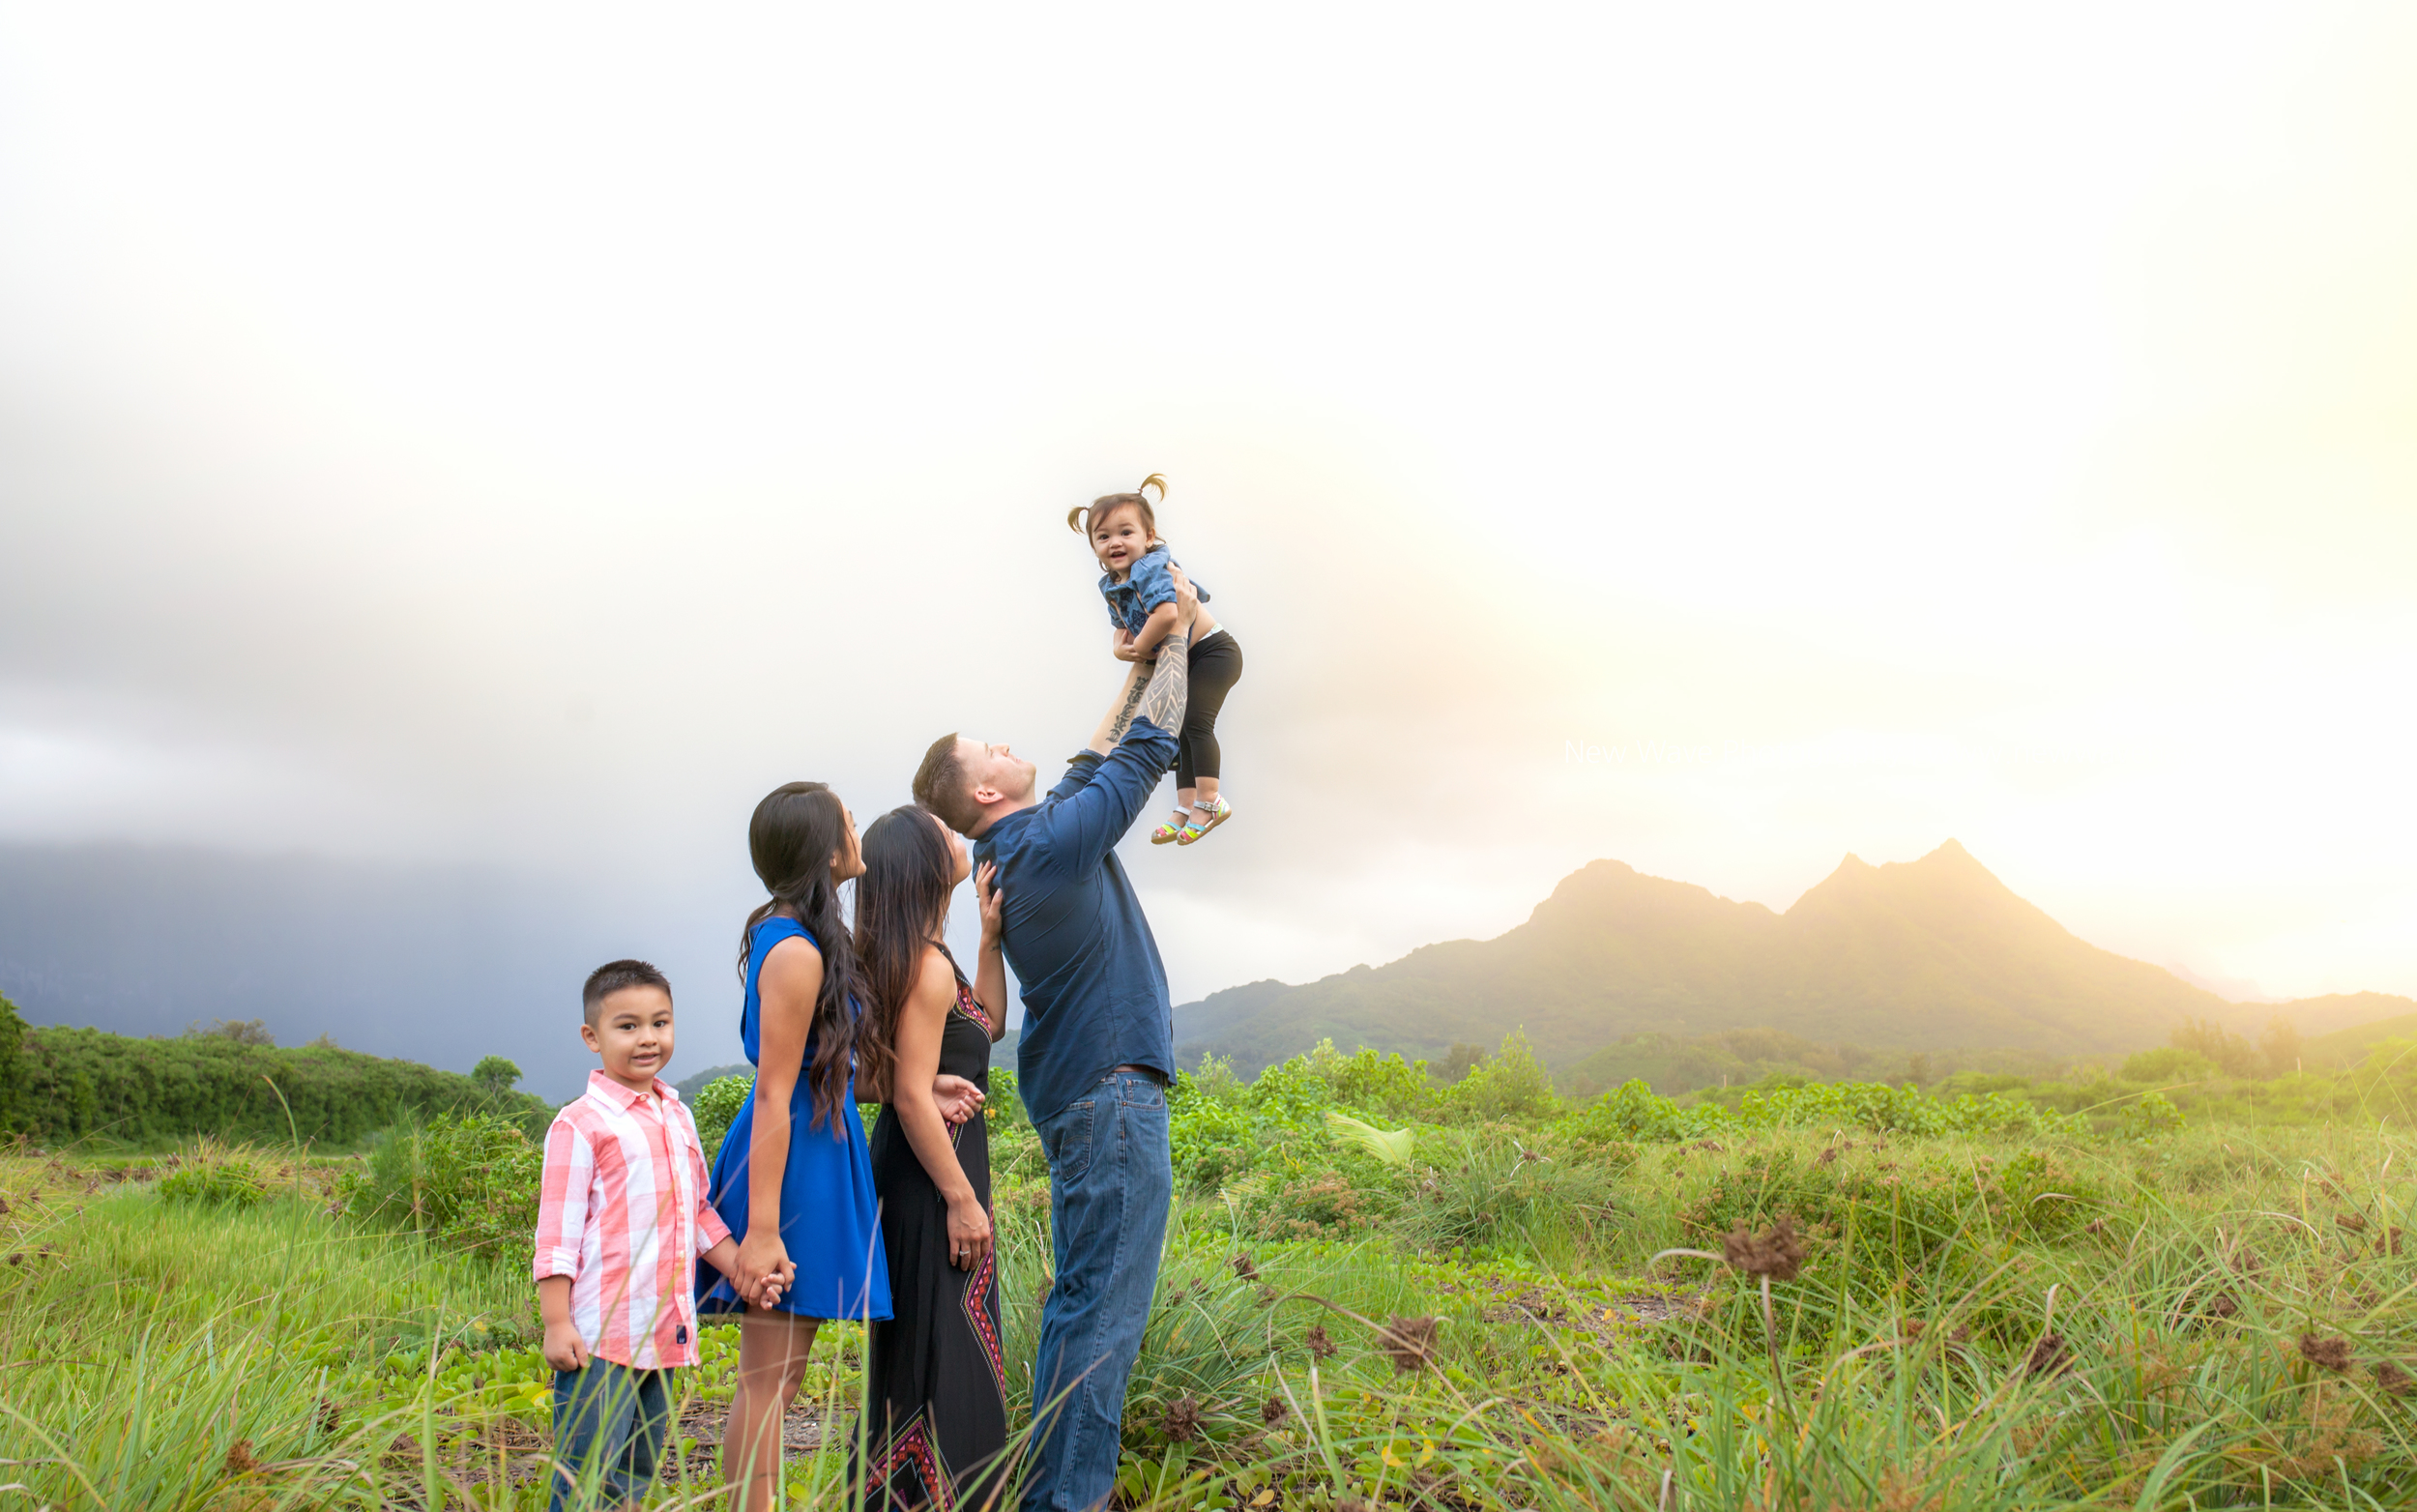 Dean Family. New Wave Photography. Family Photographer. California Photographer. Hawaii Photographer. Family and Couples Photography-5.jpg